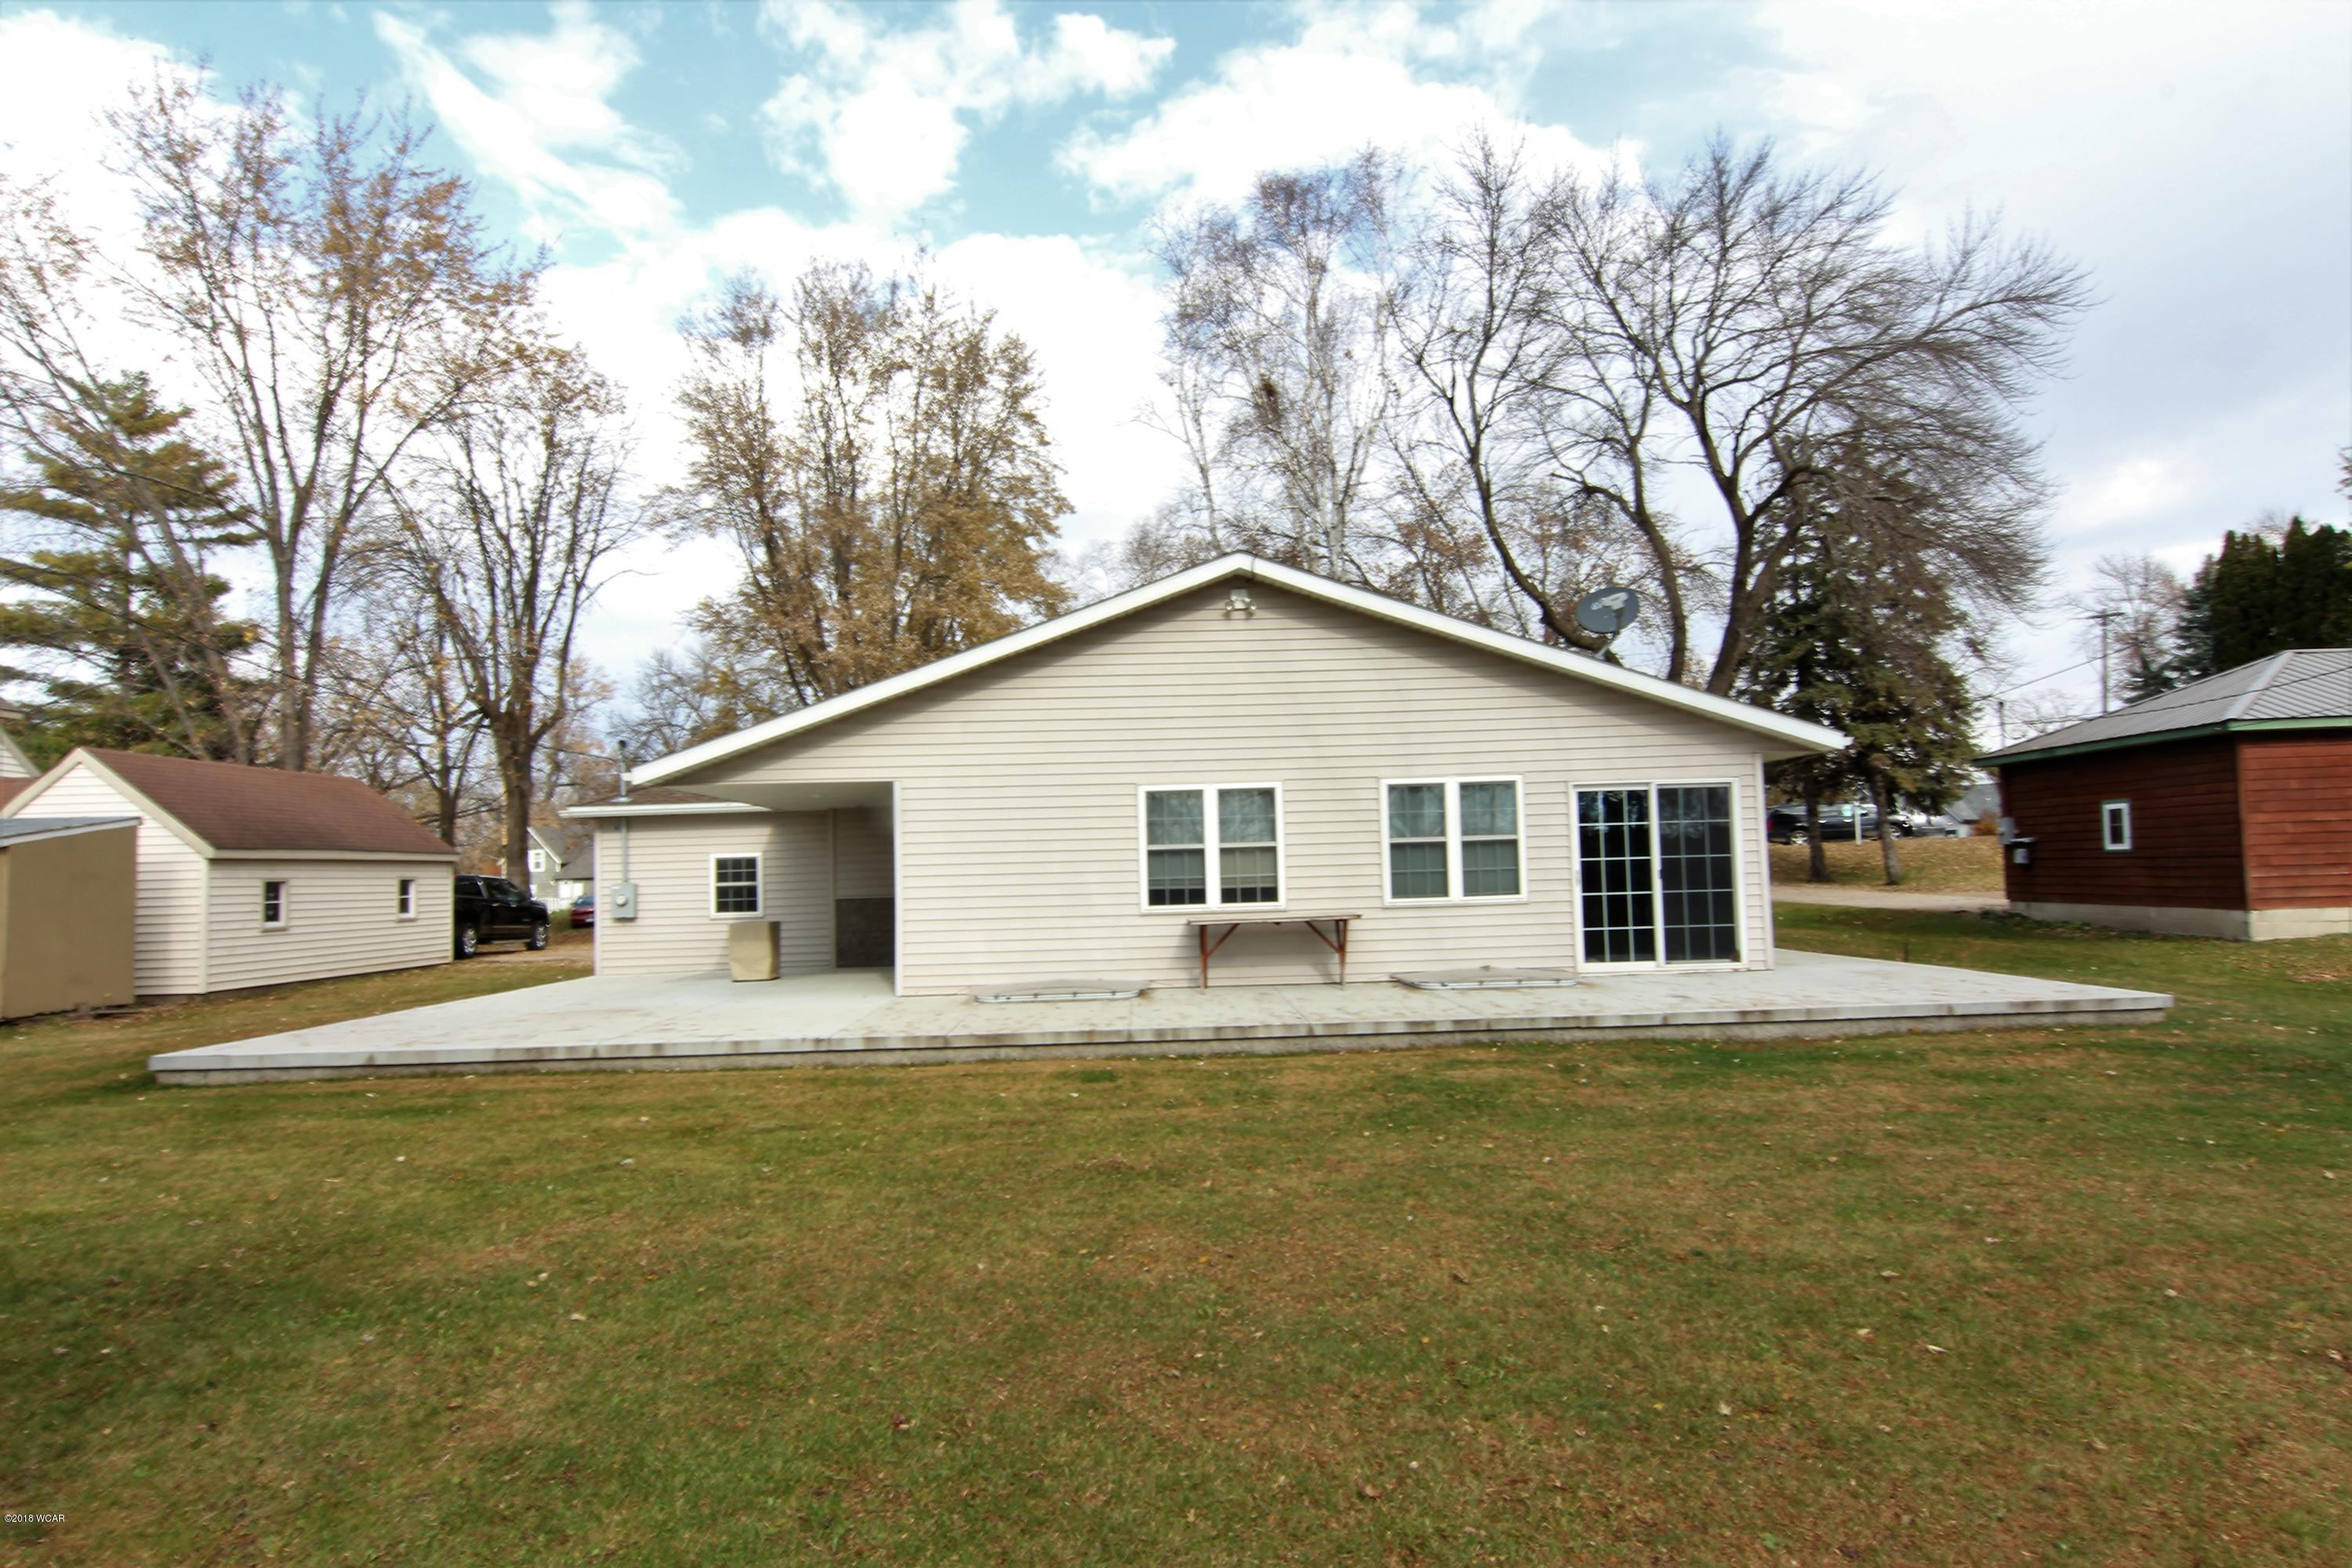 412 Lake Avenue,Spicer,3 Bedrooms Bedrooms,2 BathroomsBathrooms,Single Family,Lake Avenue,6032772